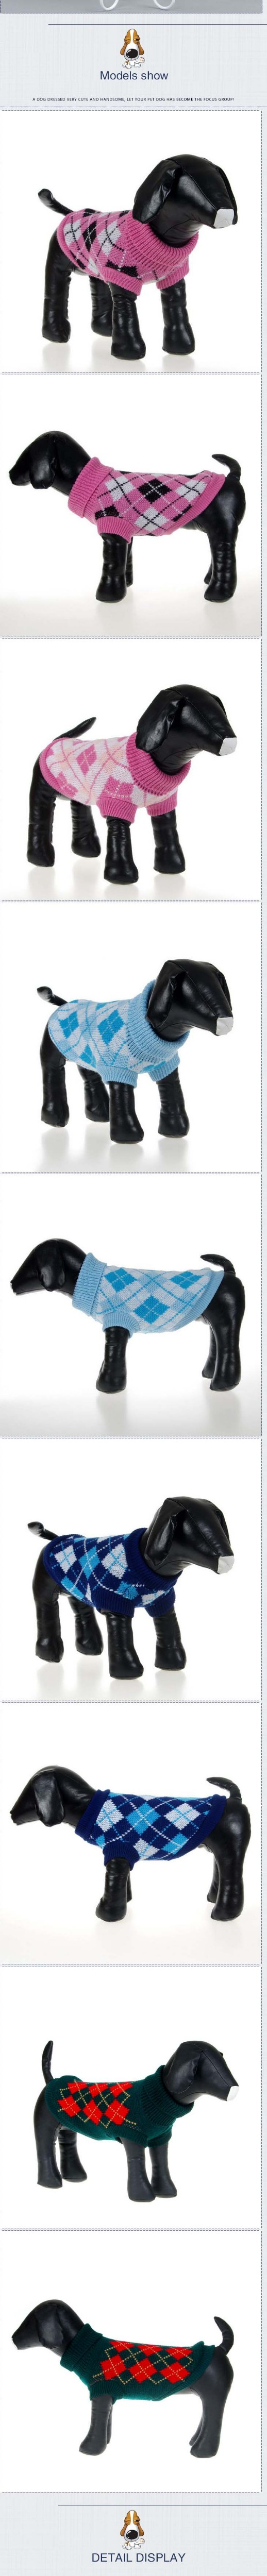 Pet Dog suéter sweatershirt Invierno Caliente knit knited crochet ...